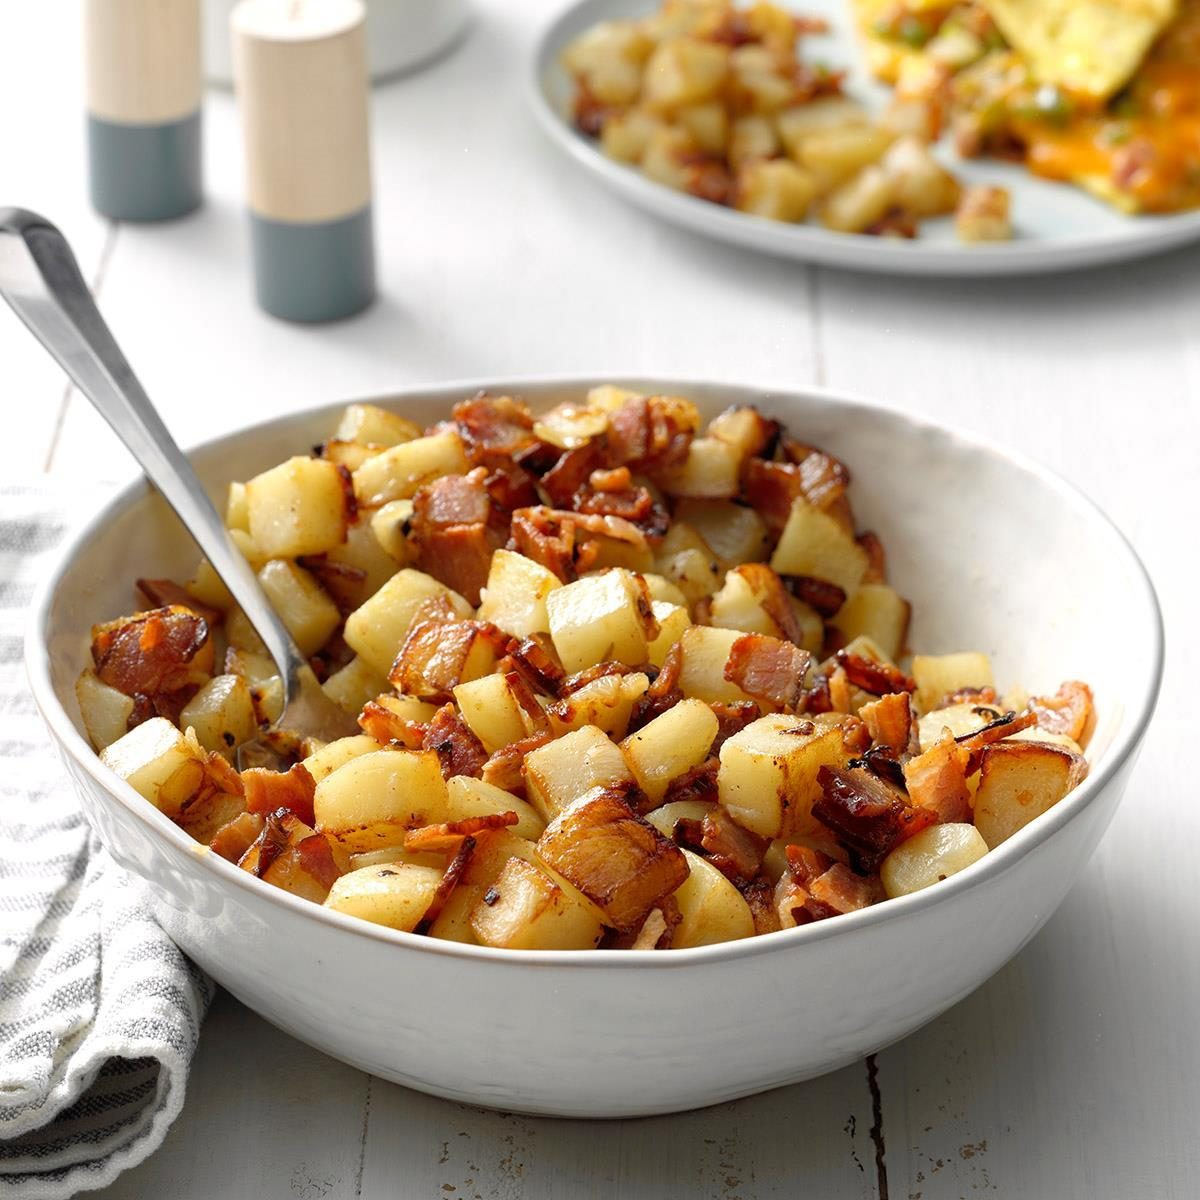 Home fries with bacon